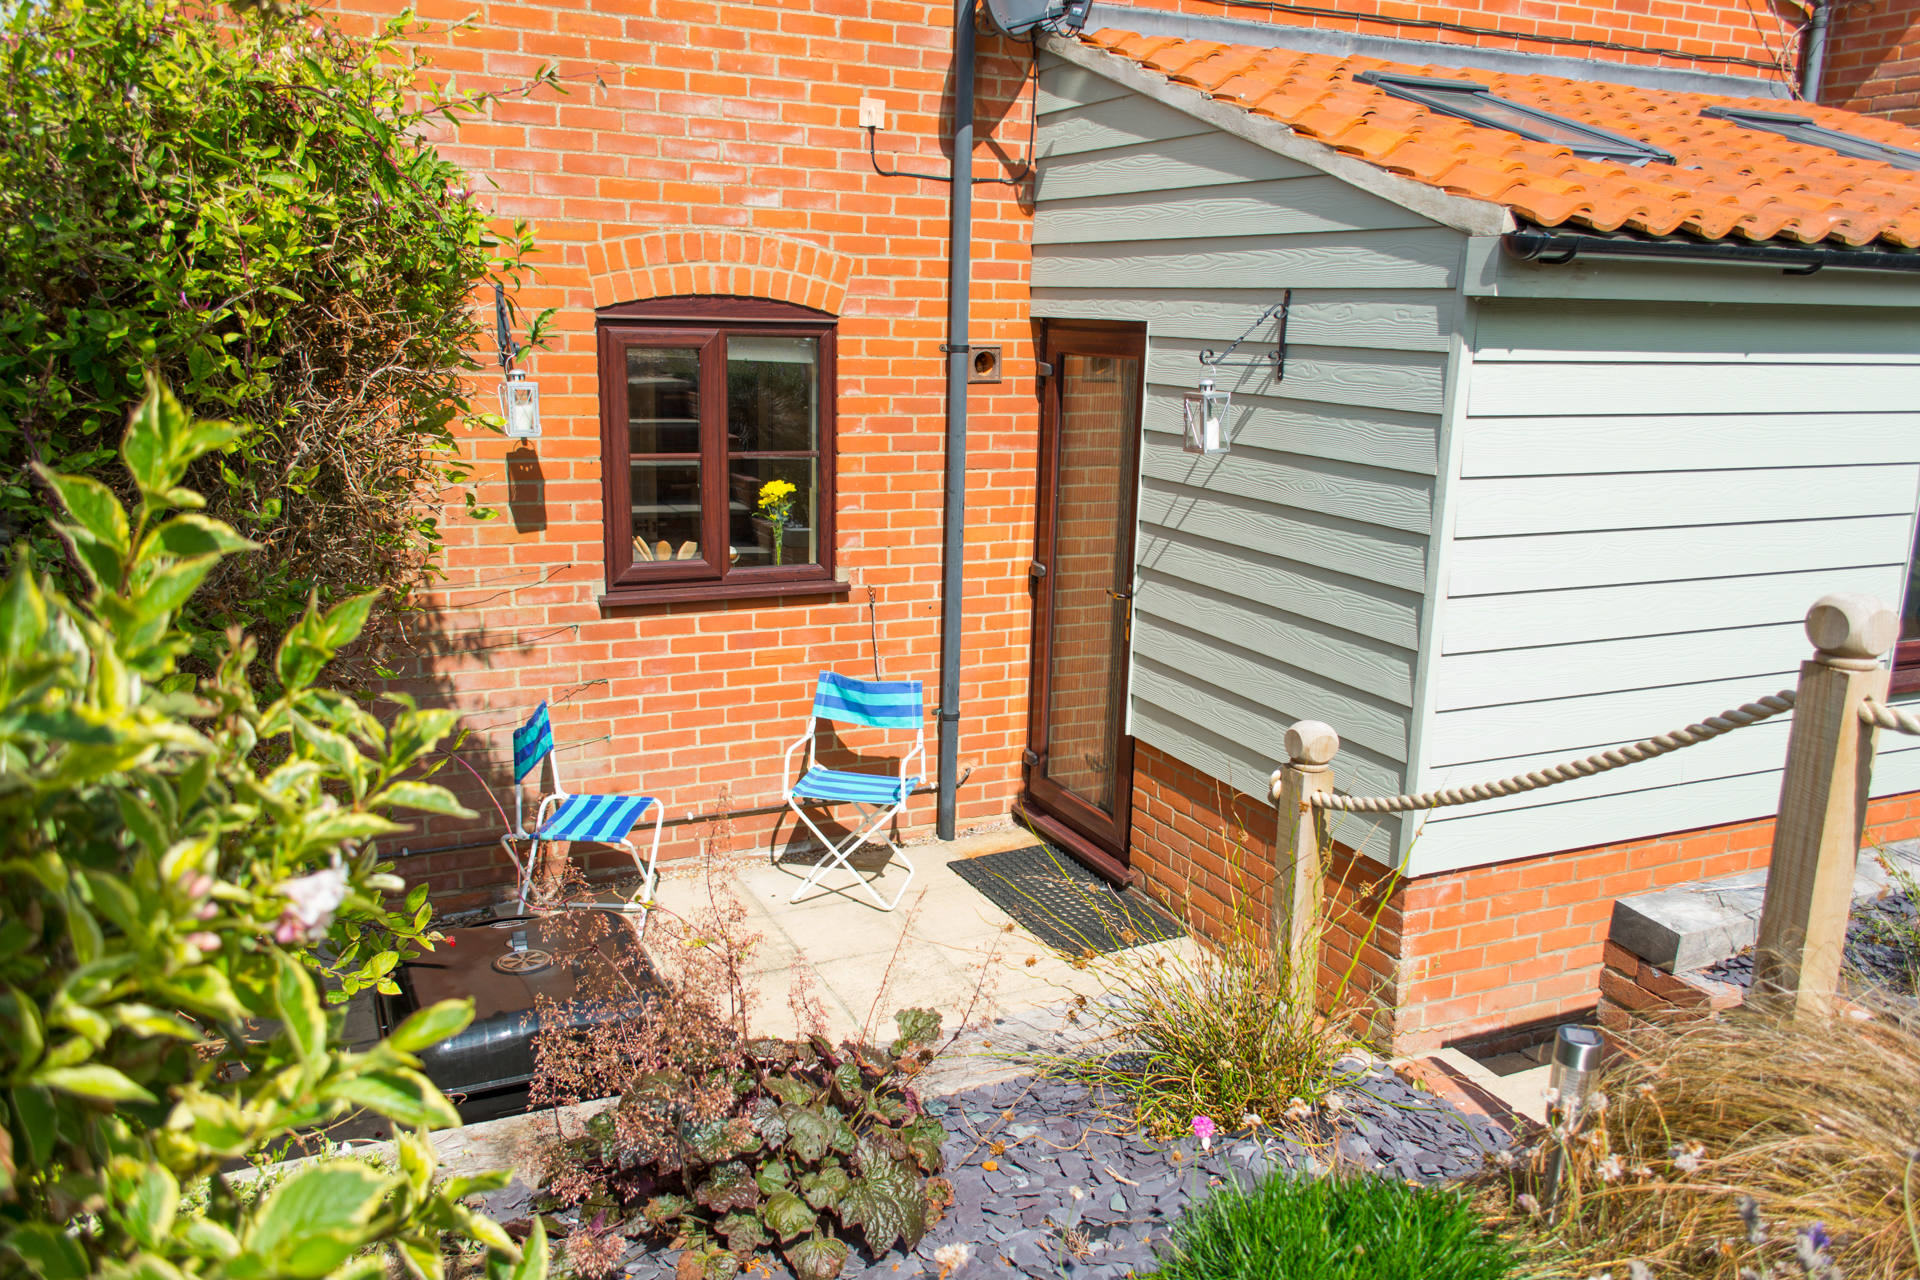 Outside area showing the rear entrance to the holiday cottage.